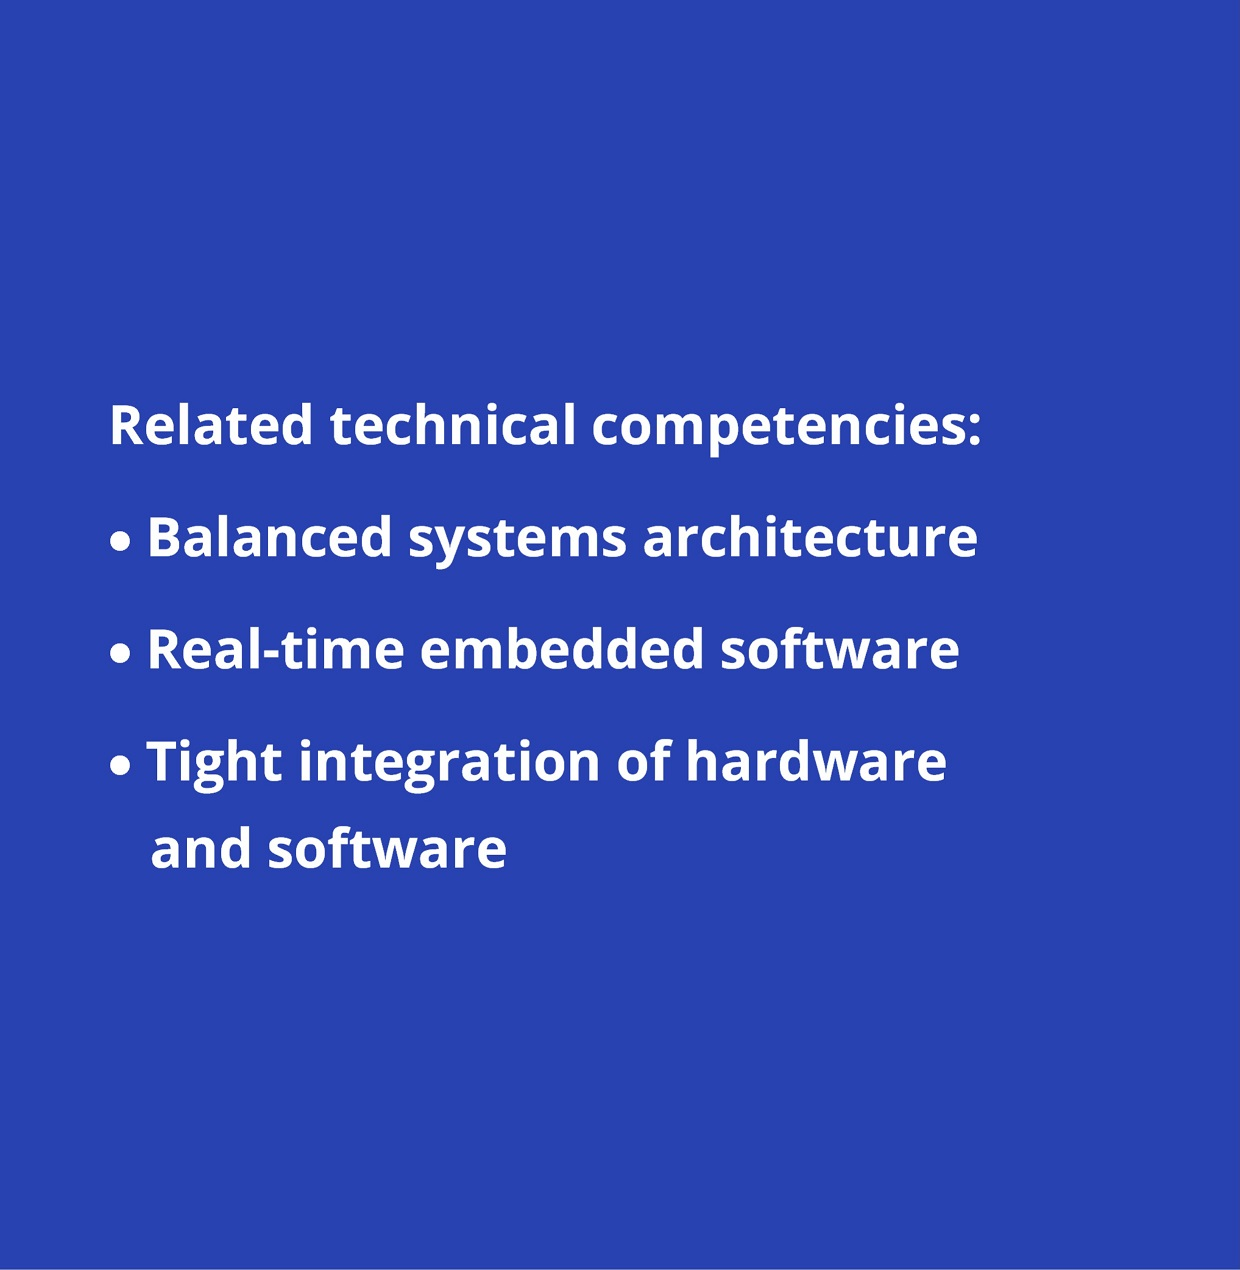 Hardware-software integration: balanced systems architecture; real-time embedded software; tight integration of hardware and software